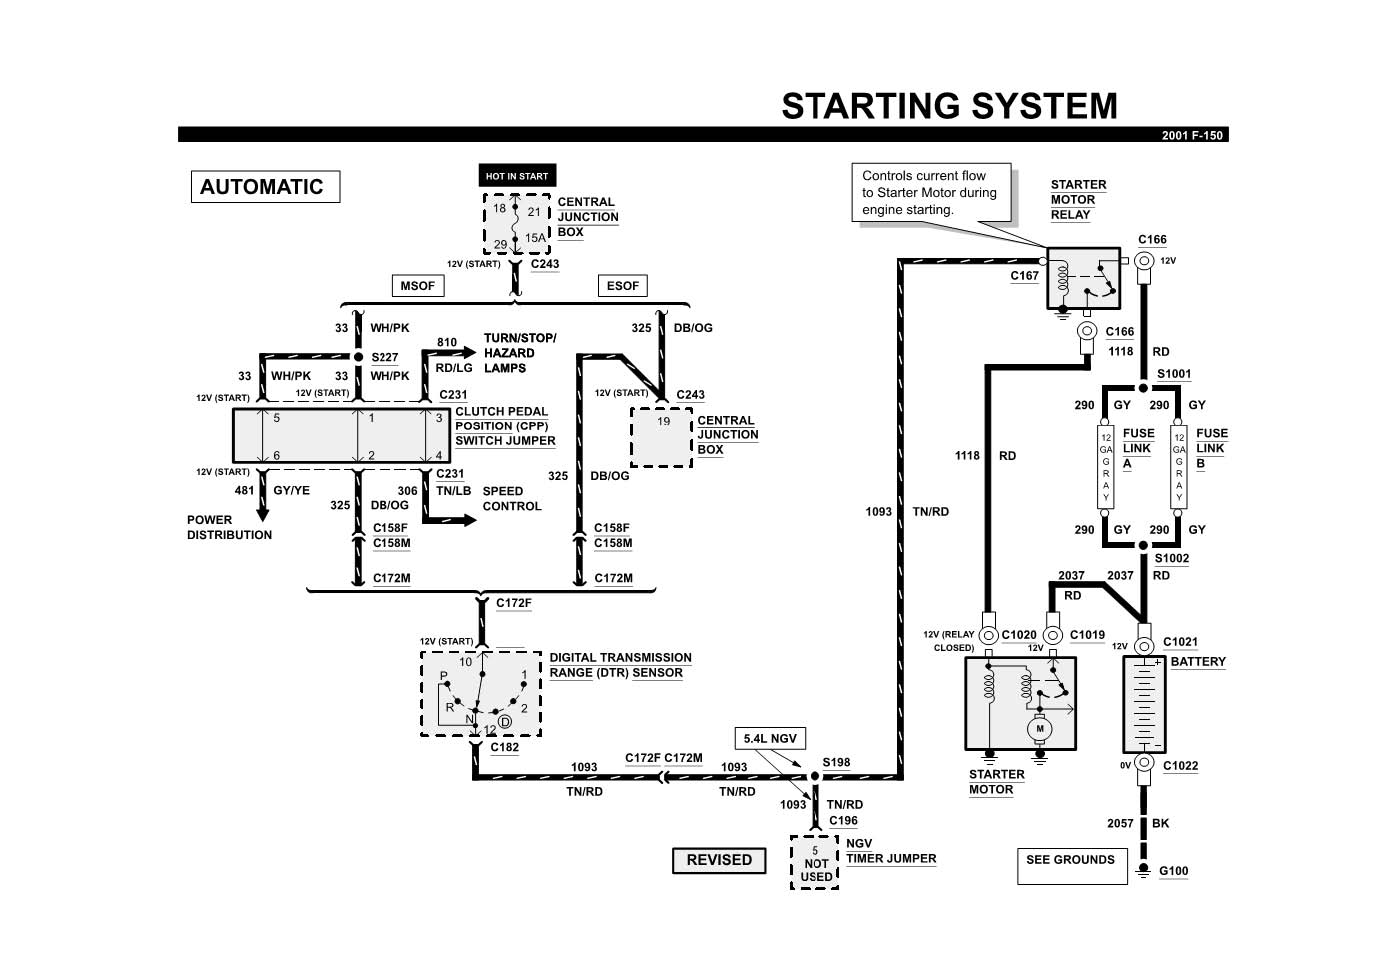 1987 Ford F150 Fuel Pump Wiring Diagram from ww2.justanswer.com